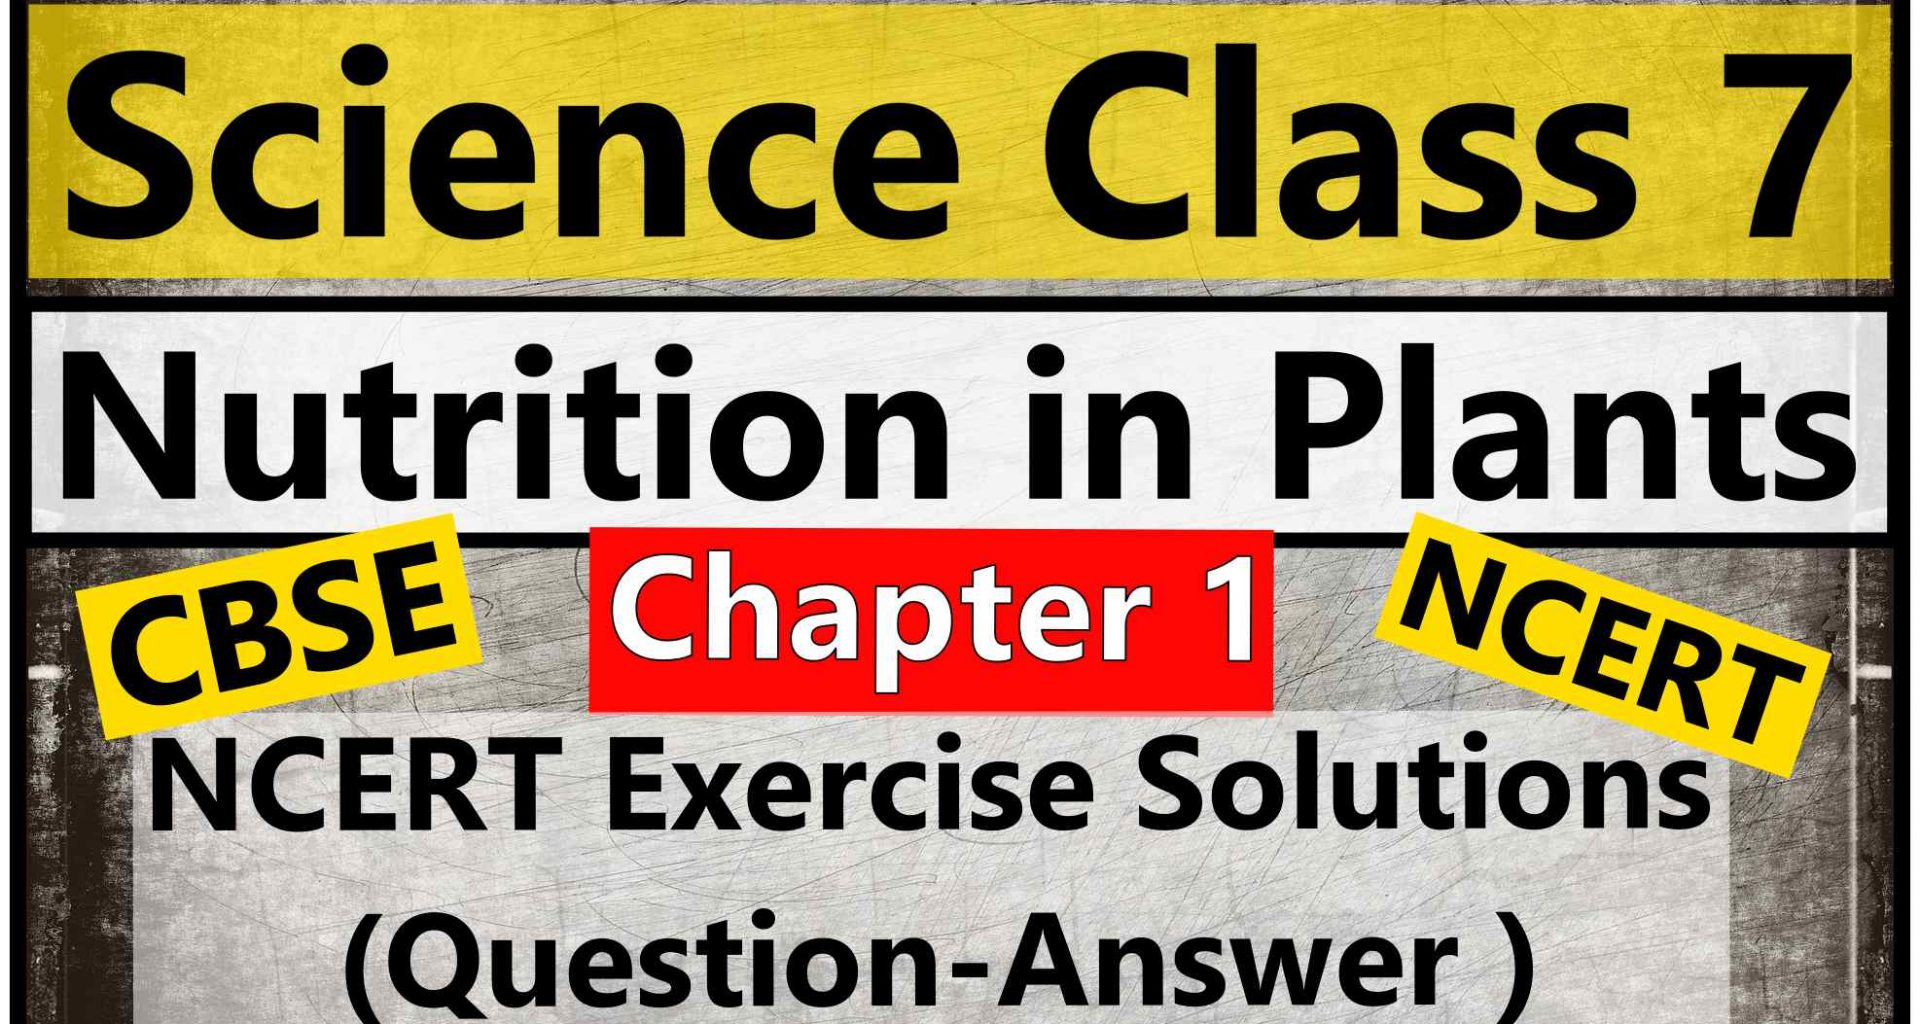 Science Class 7- Chapter 1- Nutrition in Plants- NCERT Exercise Solutions (Question-Answer )